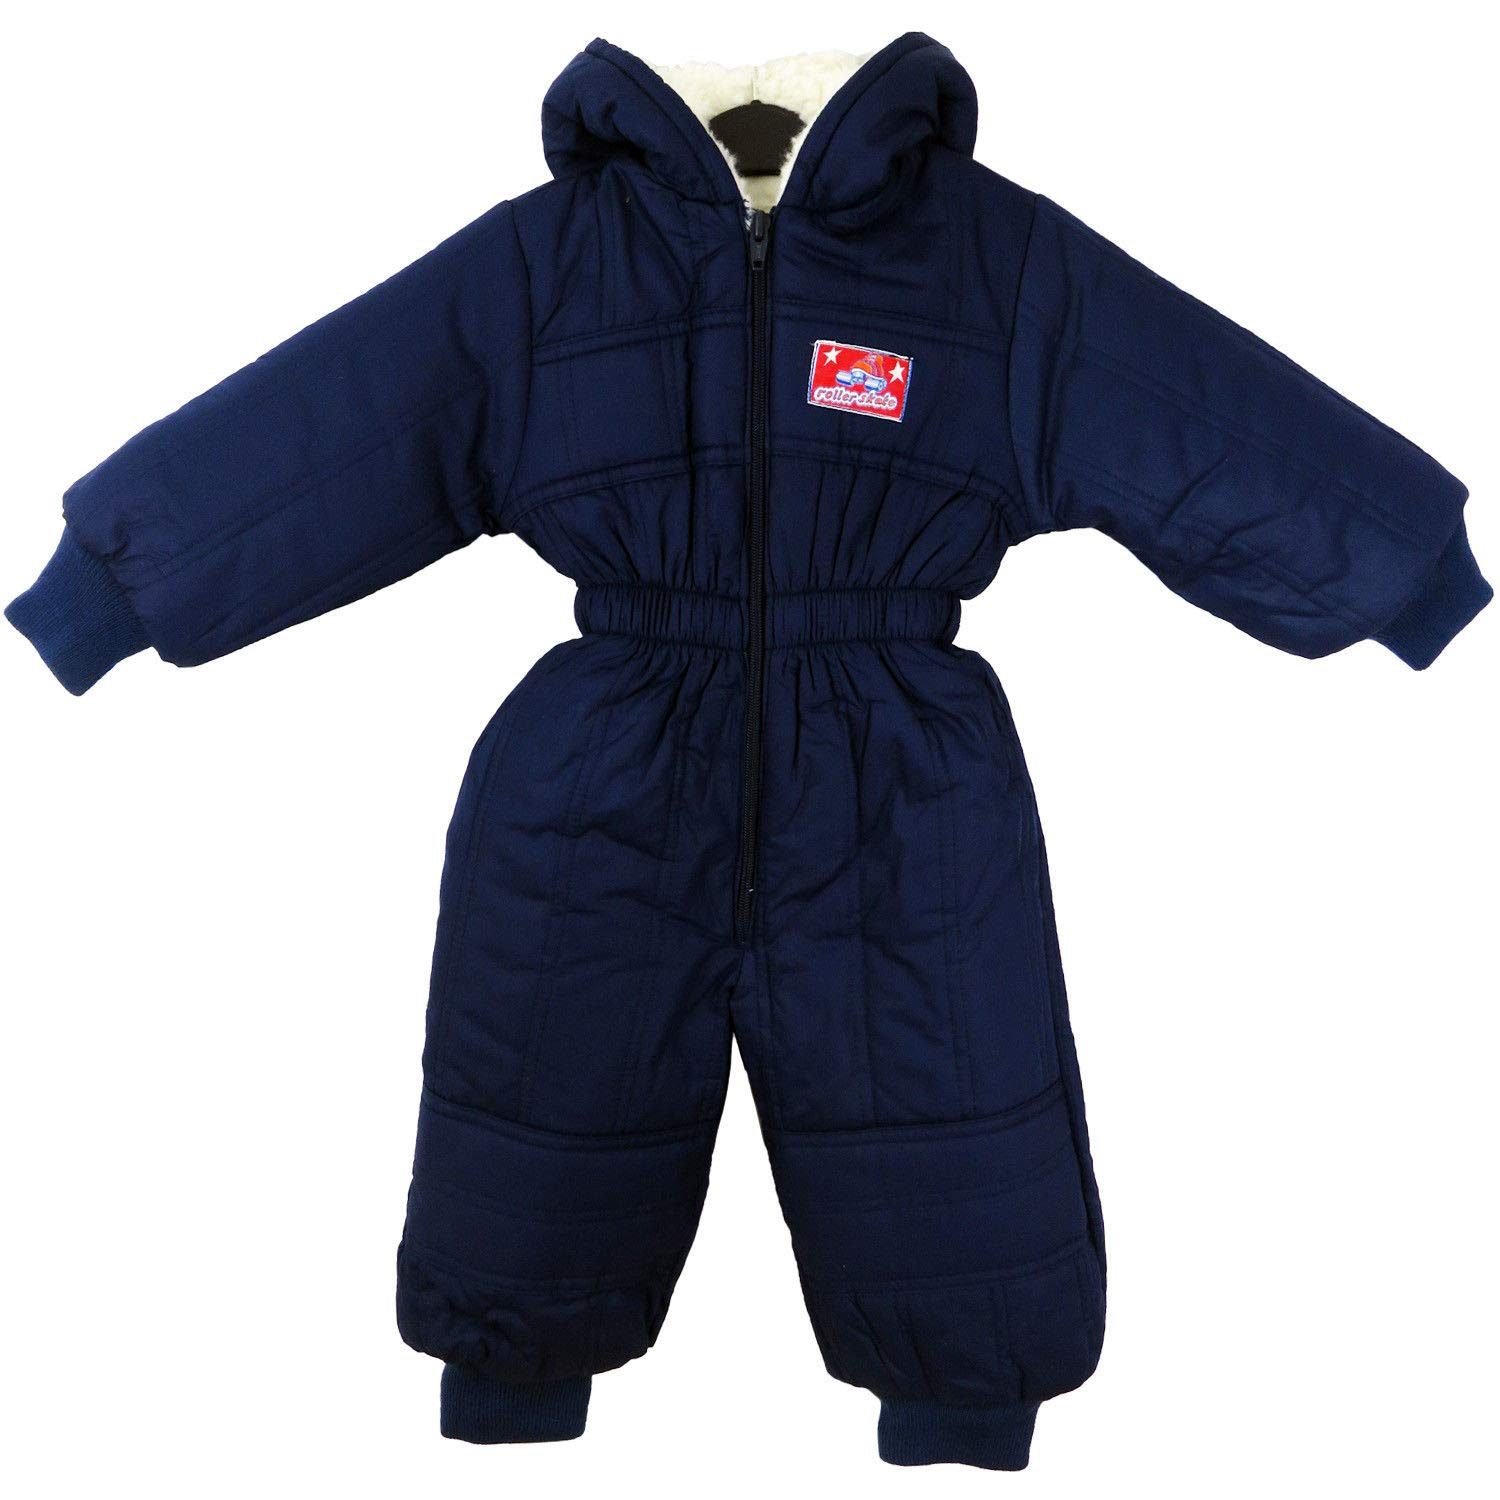 Toddler Baby Baby Kids Winter Warm Hooded Romper Fleece Boy Girl Snowsuit Winter Bodysuit Outfit Navy Size 12Months - 4YrsUK